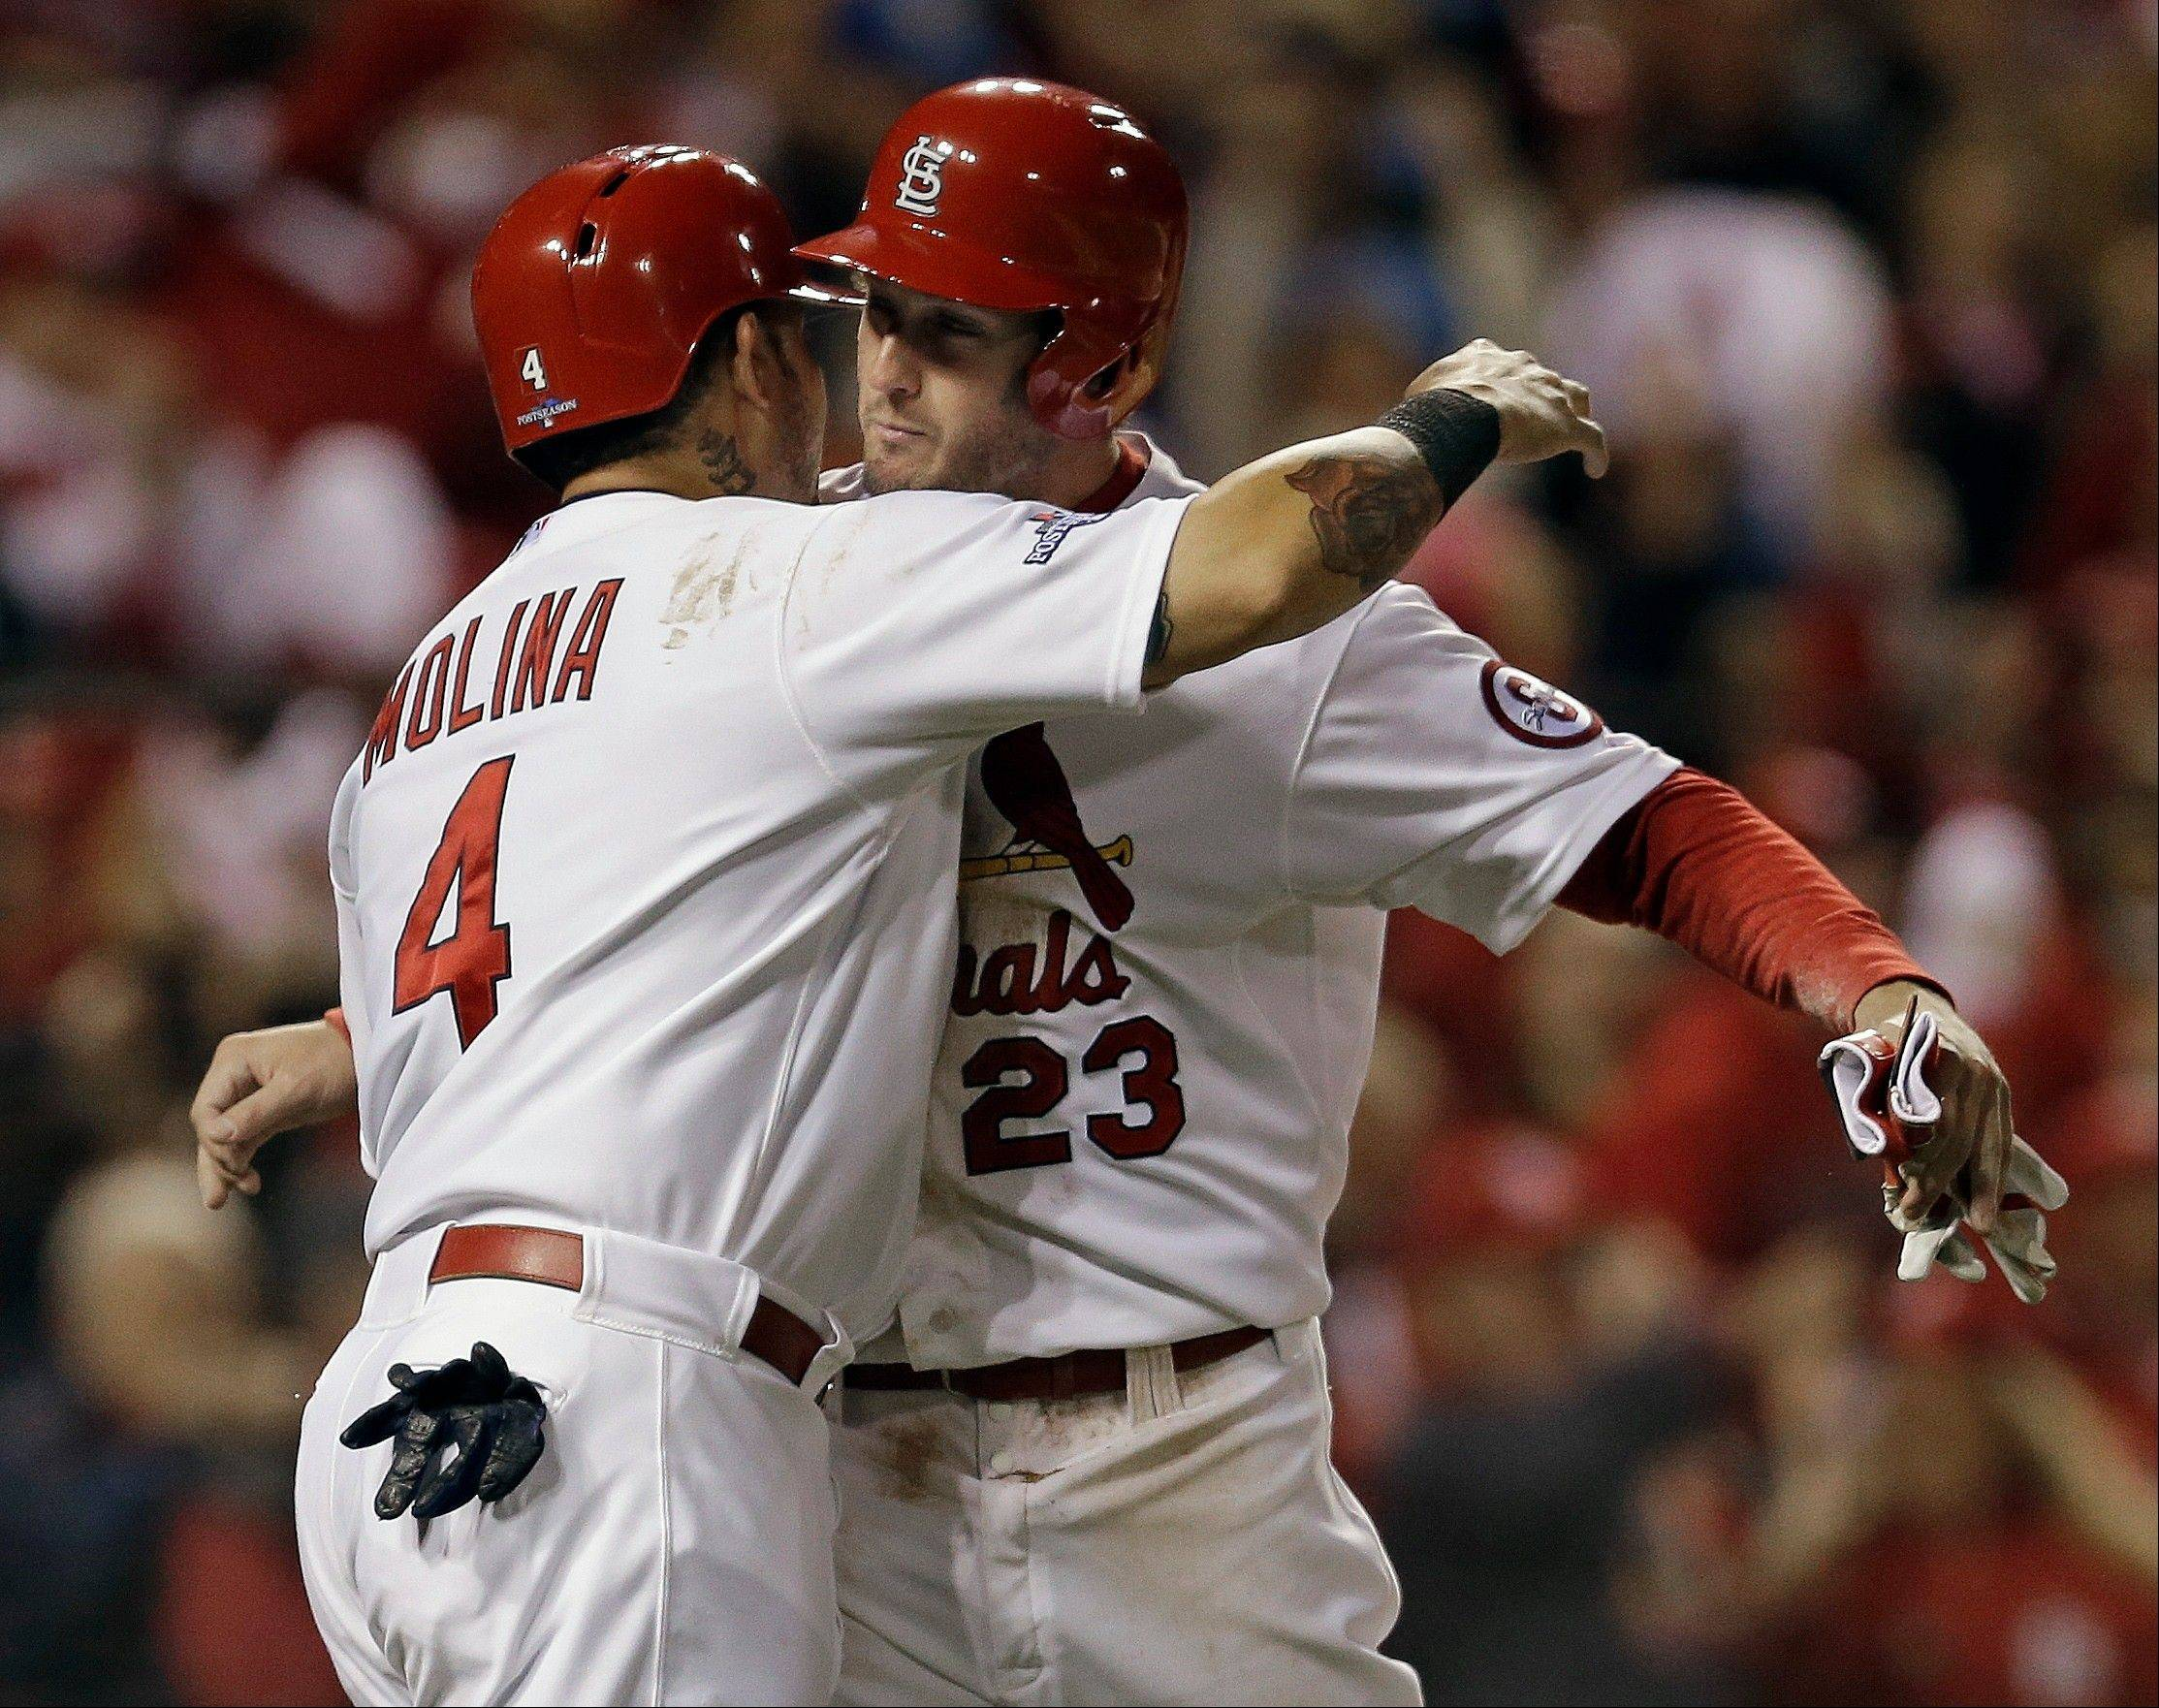 The Cardinals' David Freese and Yadier Molina celebrate after both scored on a hit by Shane Robinson during the third inning of Game 6 of the National League Championship Series against the Los Angeles Dodgers on Friday in St. Louis.